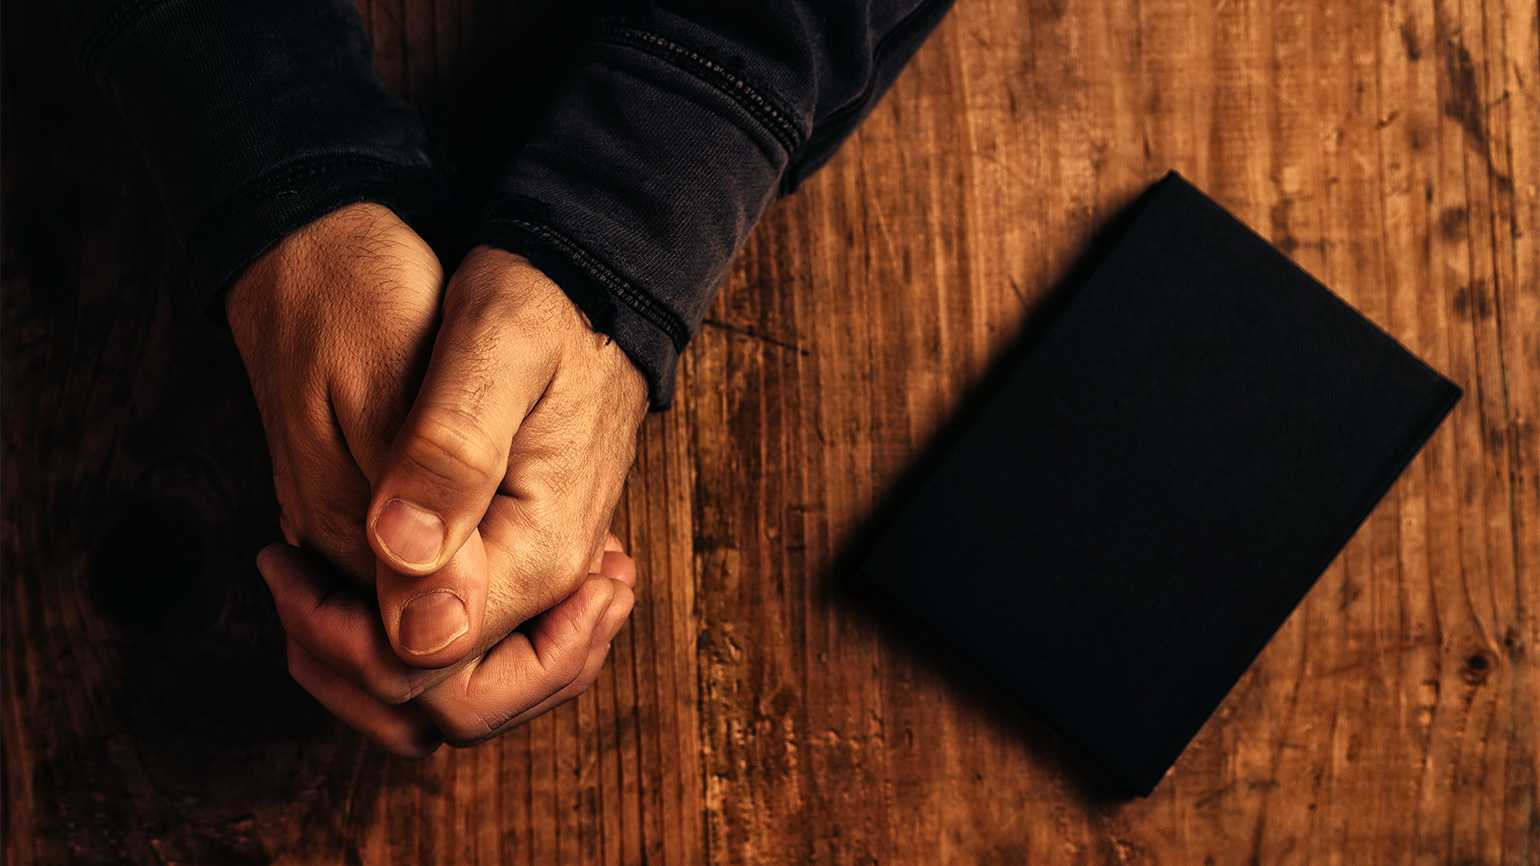 A man's hands clasped in prayer, with a Bible nearby